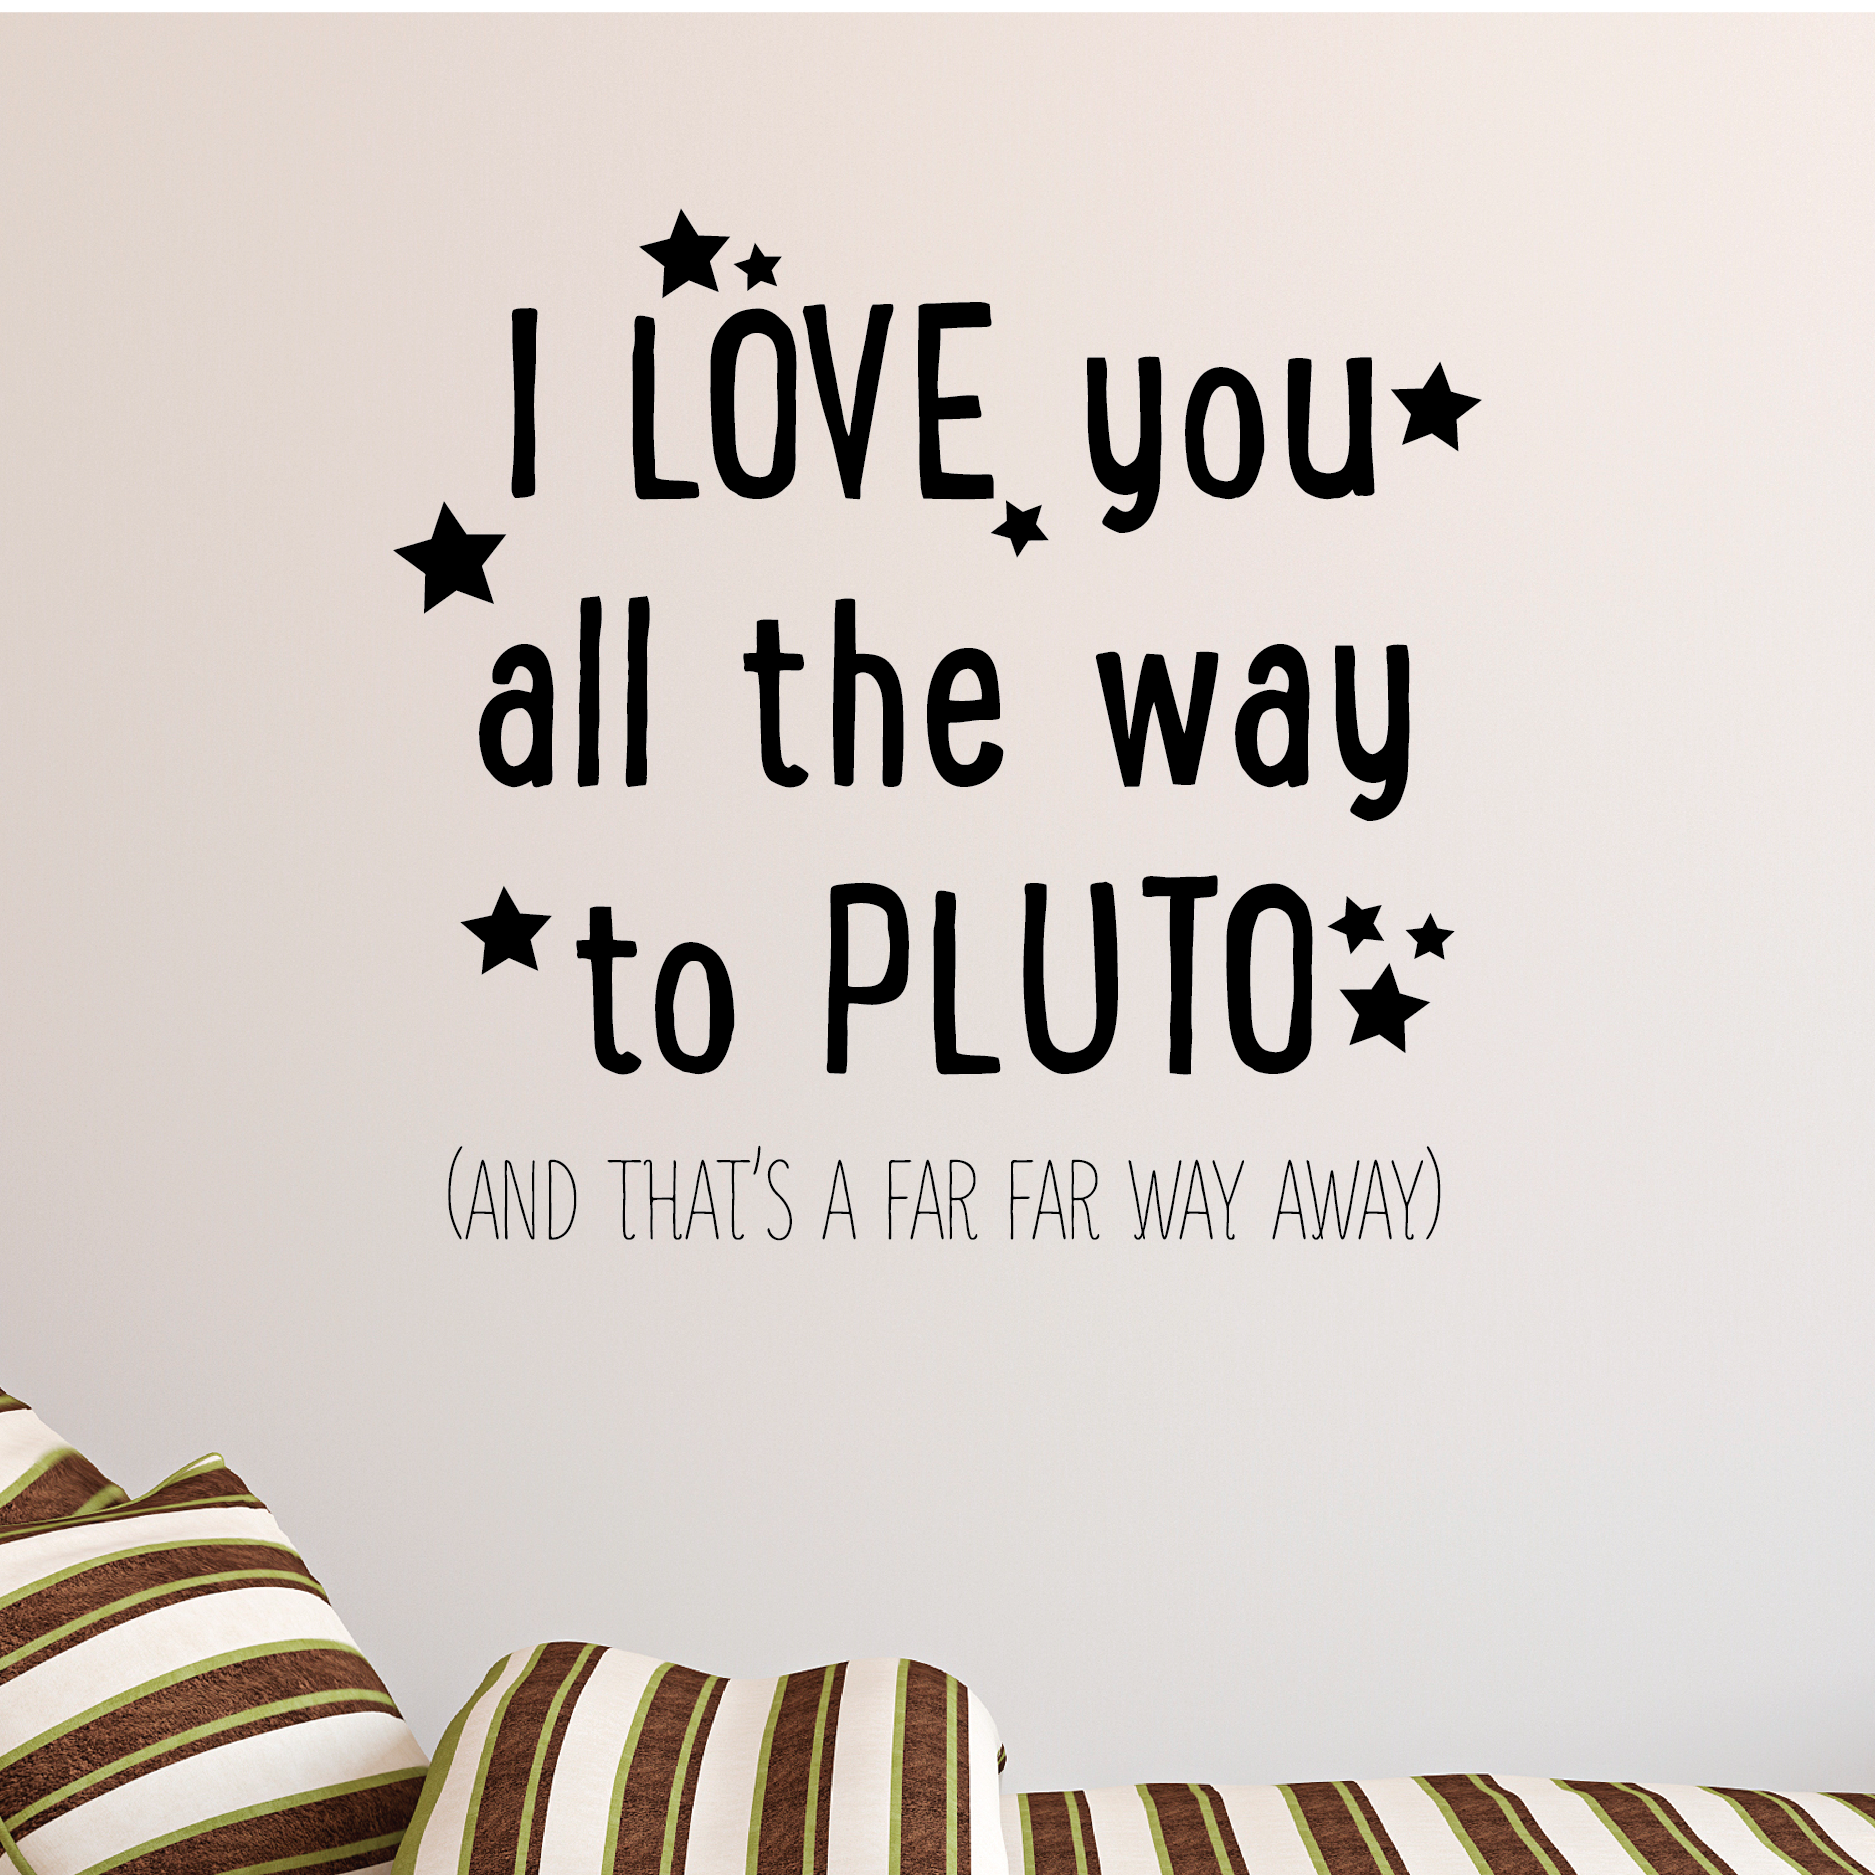 I Love You Quotes: I Love You To Pluto Wall Quotes™ Decal